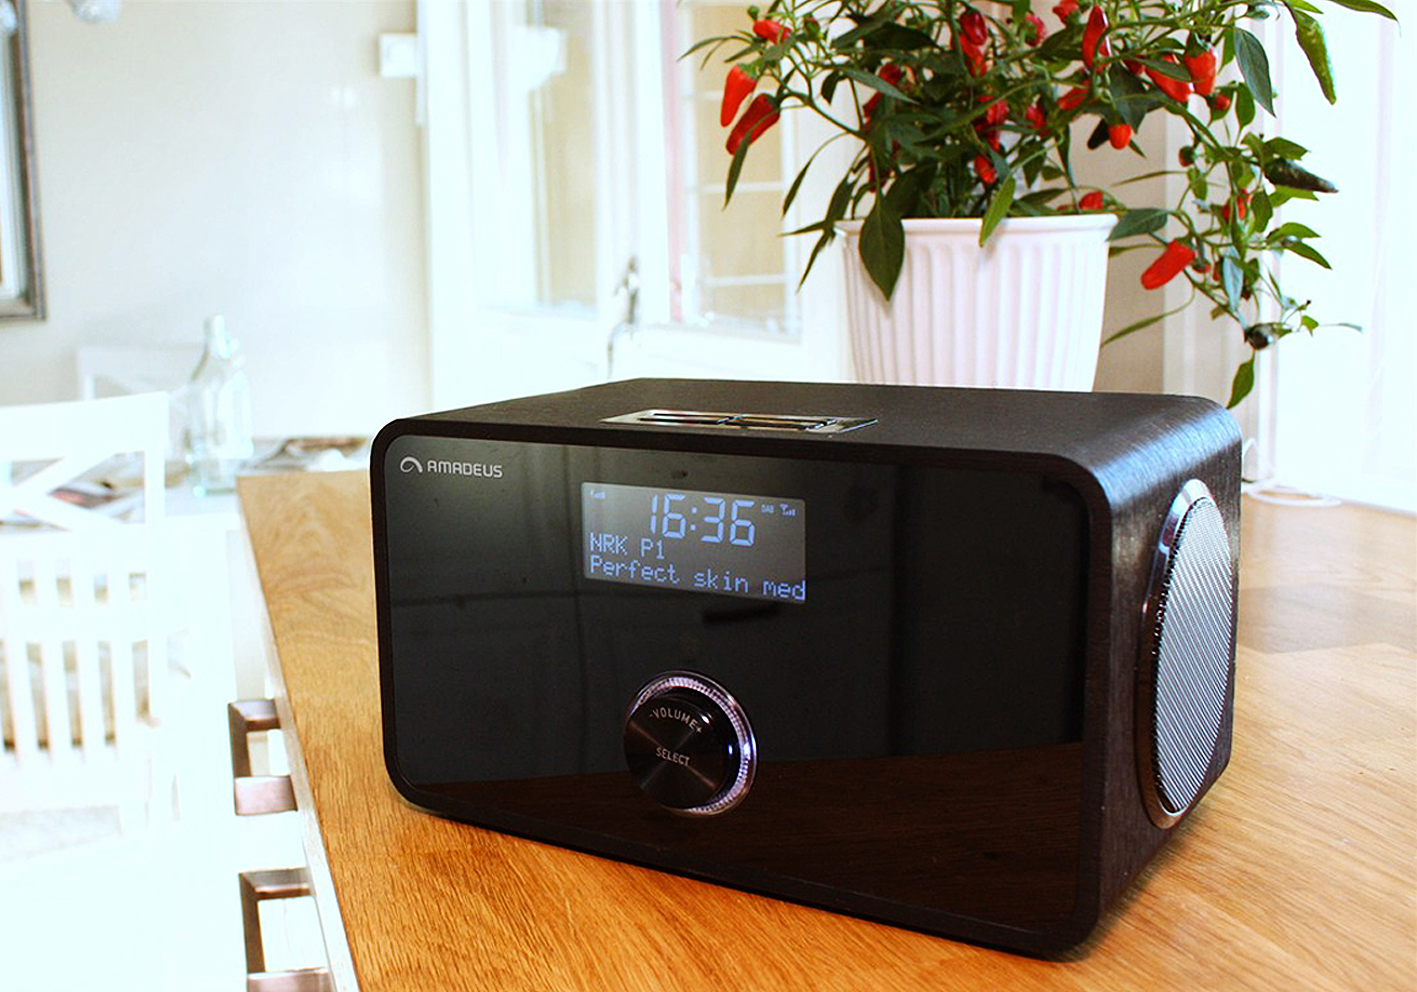 Amadeus DAB-radio best i test